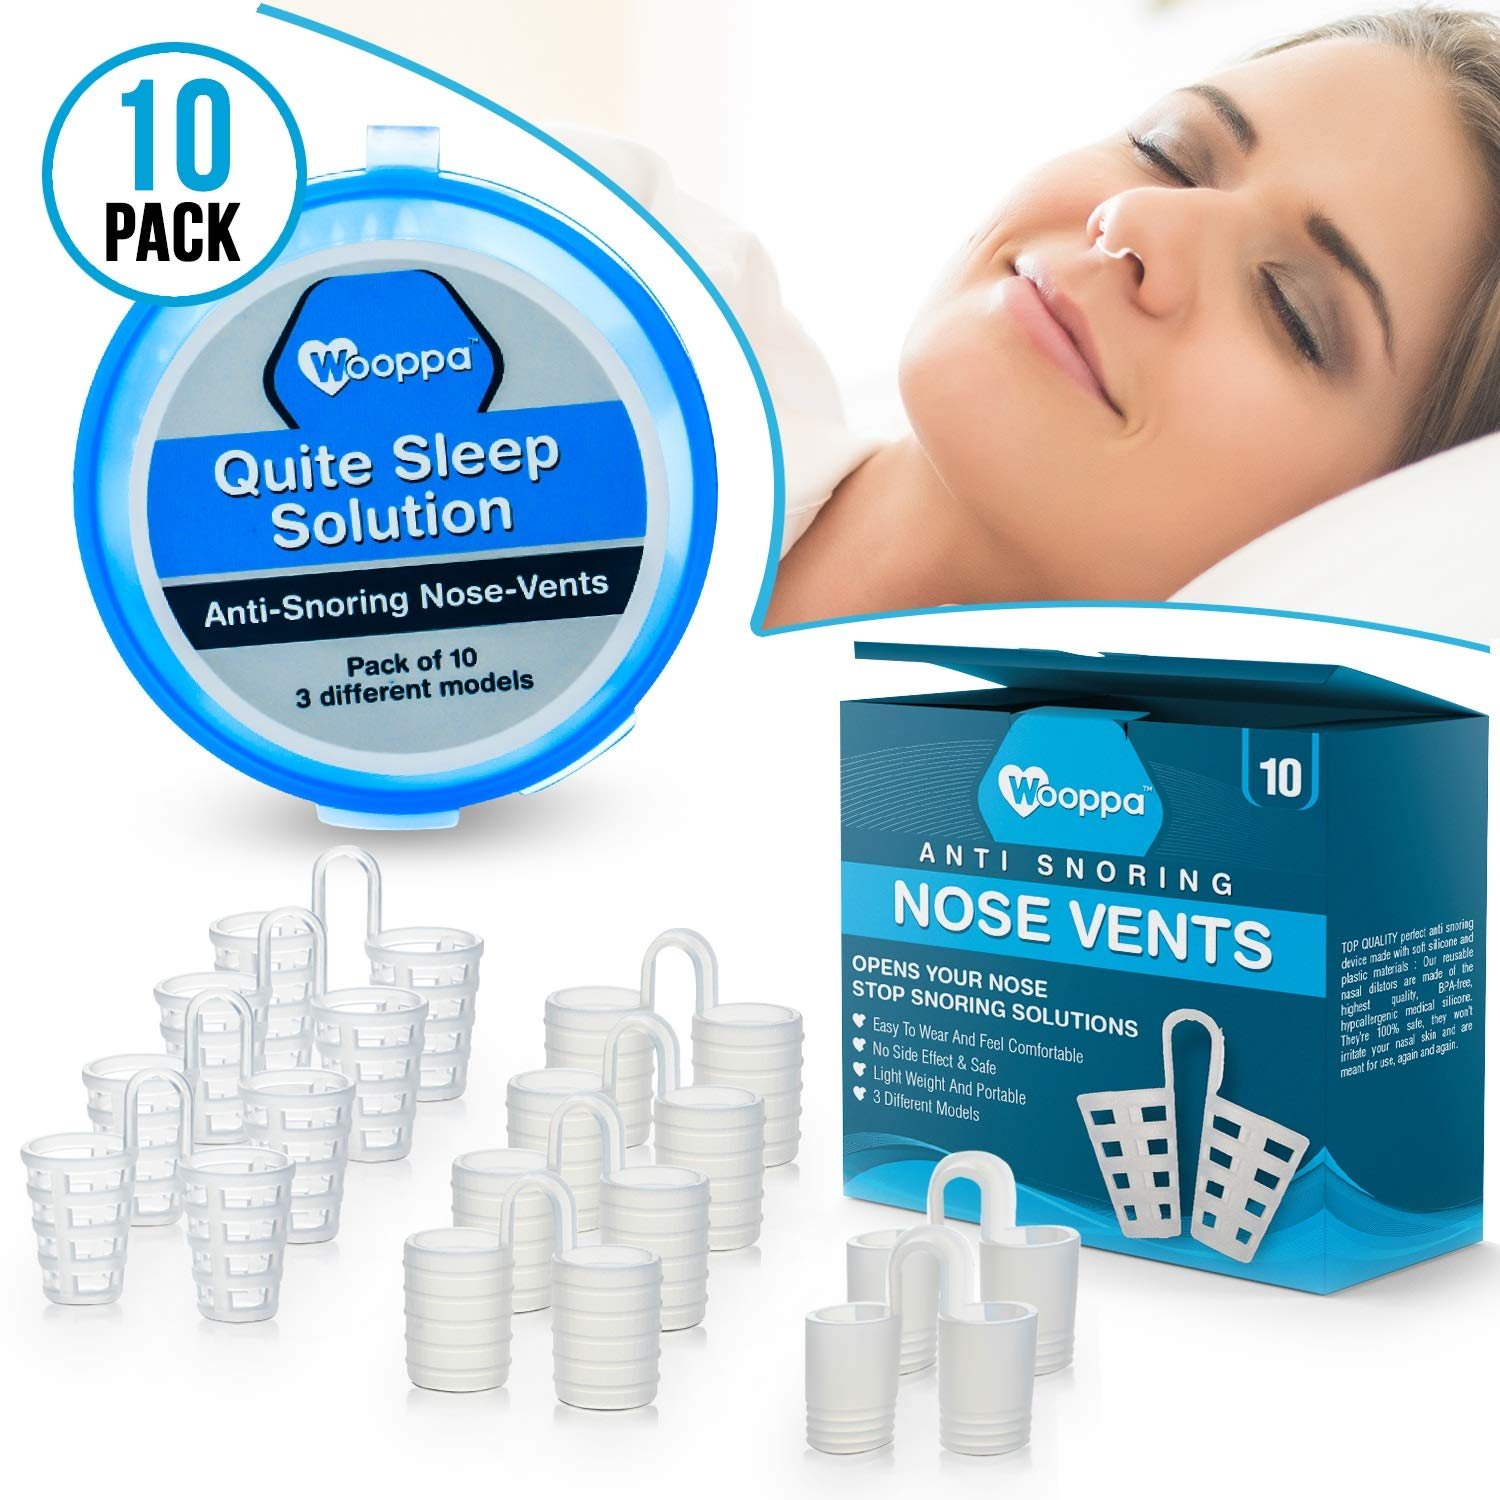 Wooppa Snoring Solution - Anti Snoring Solutions - Anti Snoring Devices - Snore Aids - Nose Vents - Snore Nasal Dilators - 10 Pack - Snore Stopper Set - Reduce Snoring - Stop Snoring by WOOPPA